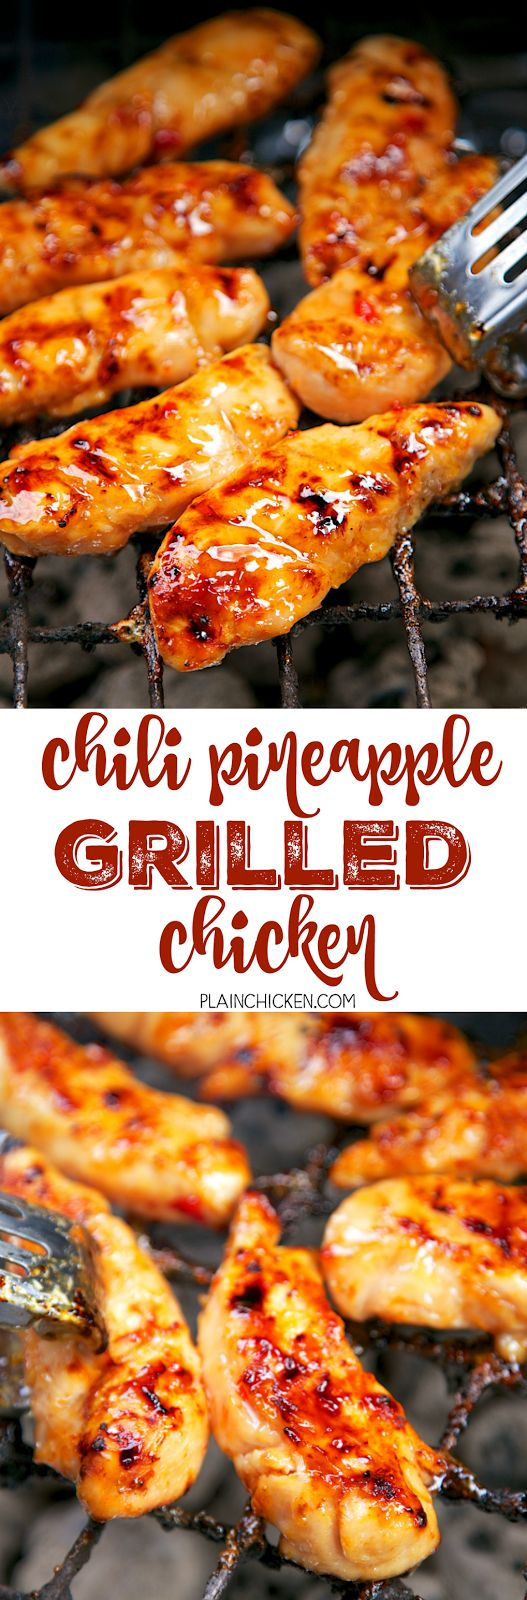 Chili Pineapple Grilled Chicken - only simple 4 ingredients! Chicken, chili sauce, pineapple juice and honey.